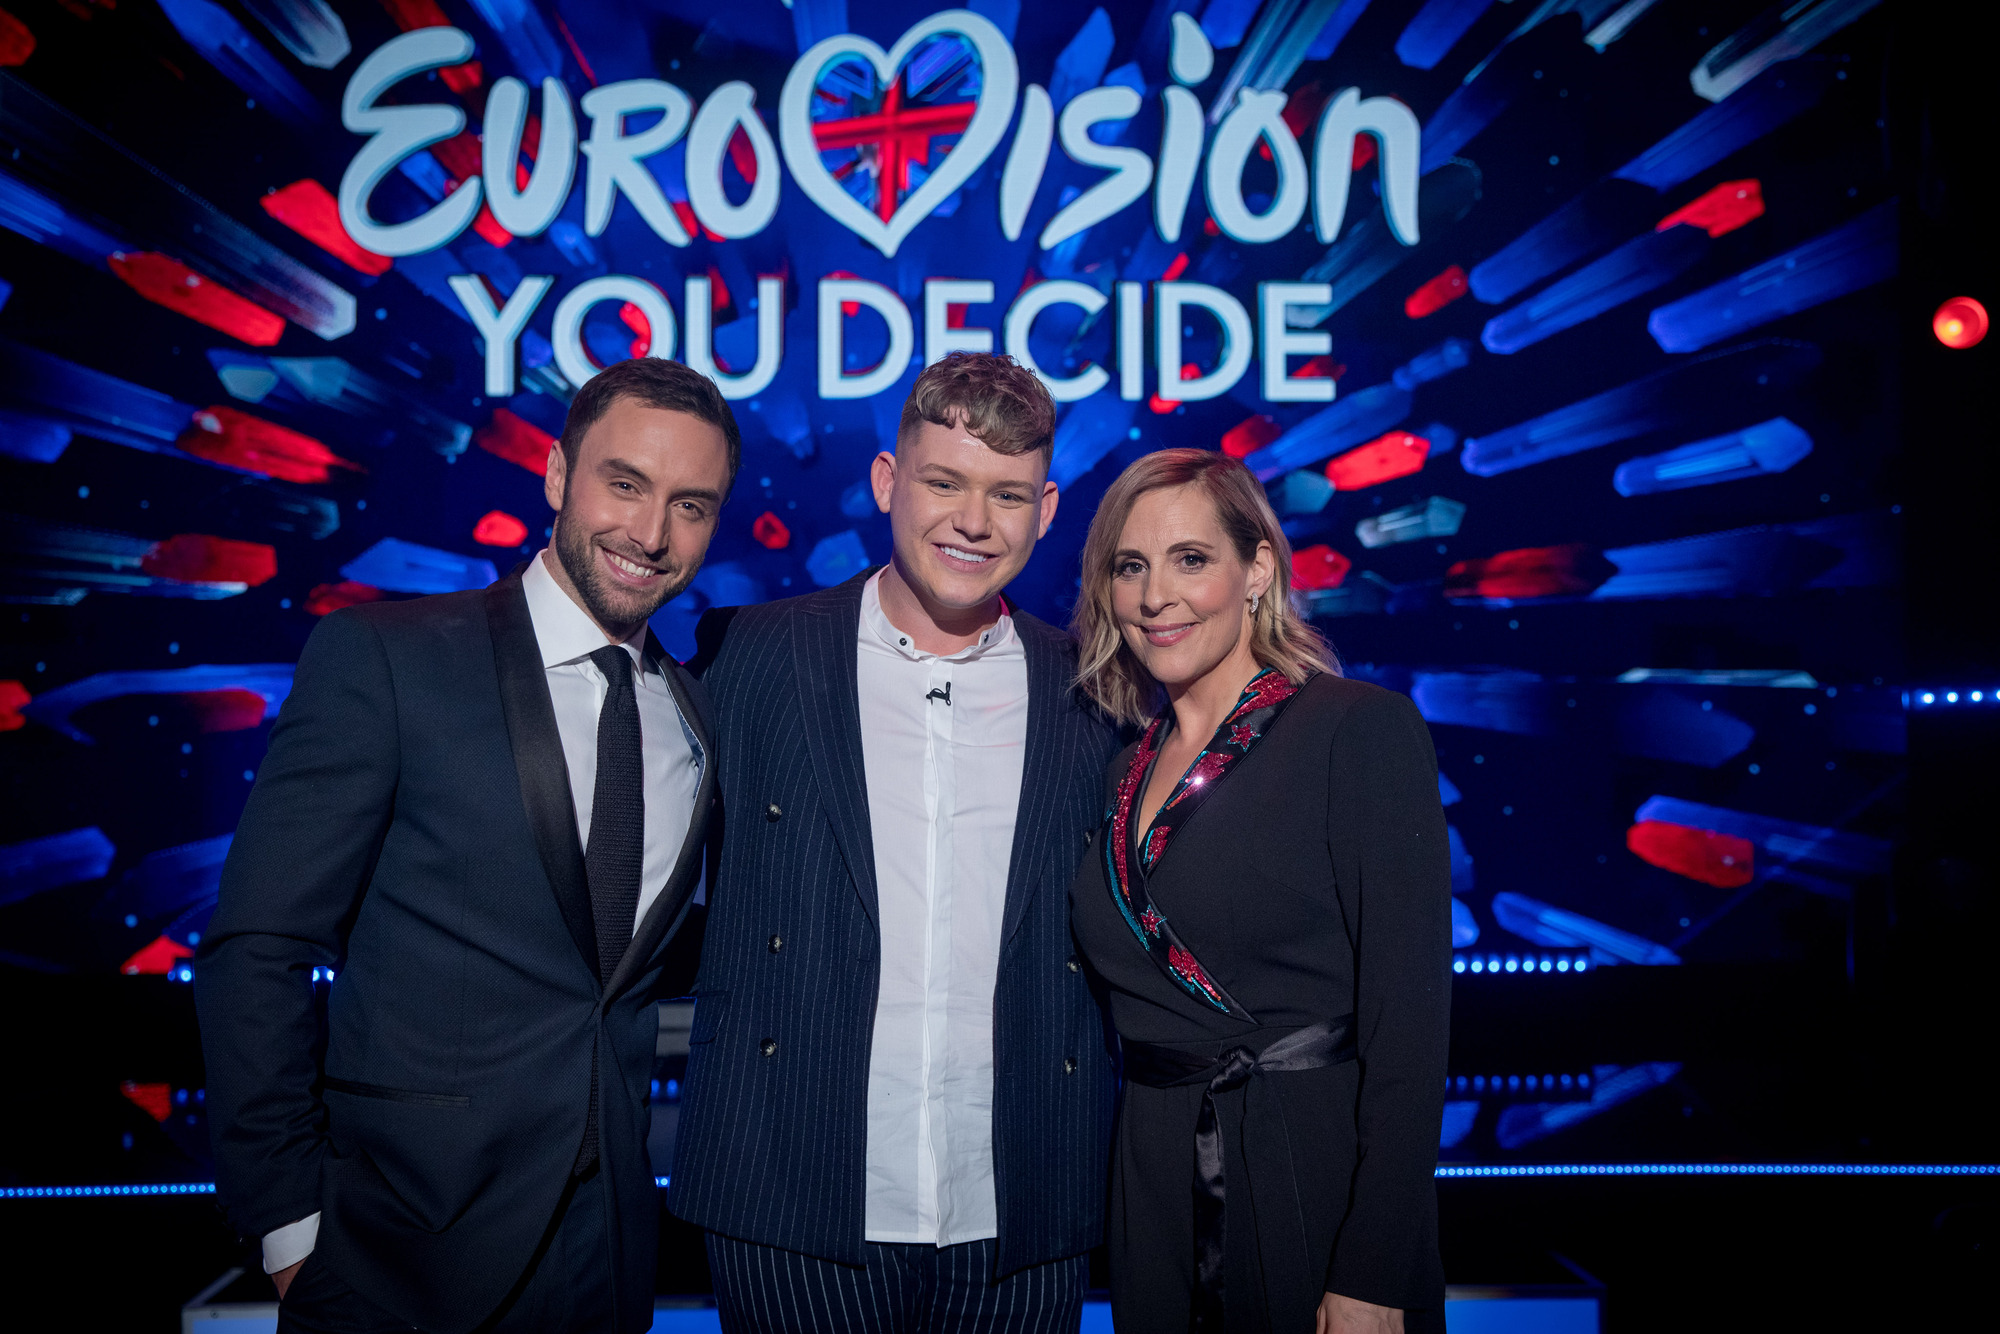 Eurovision royalty Måns Zelmerlöw will be shocked if UK doesn't do well this year